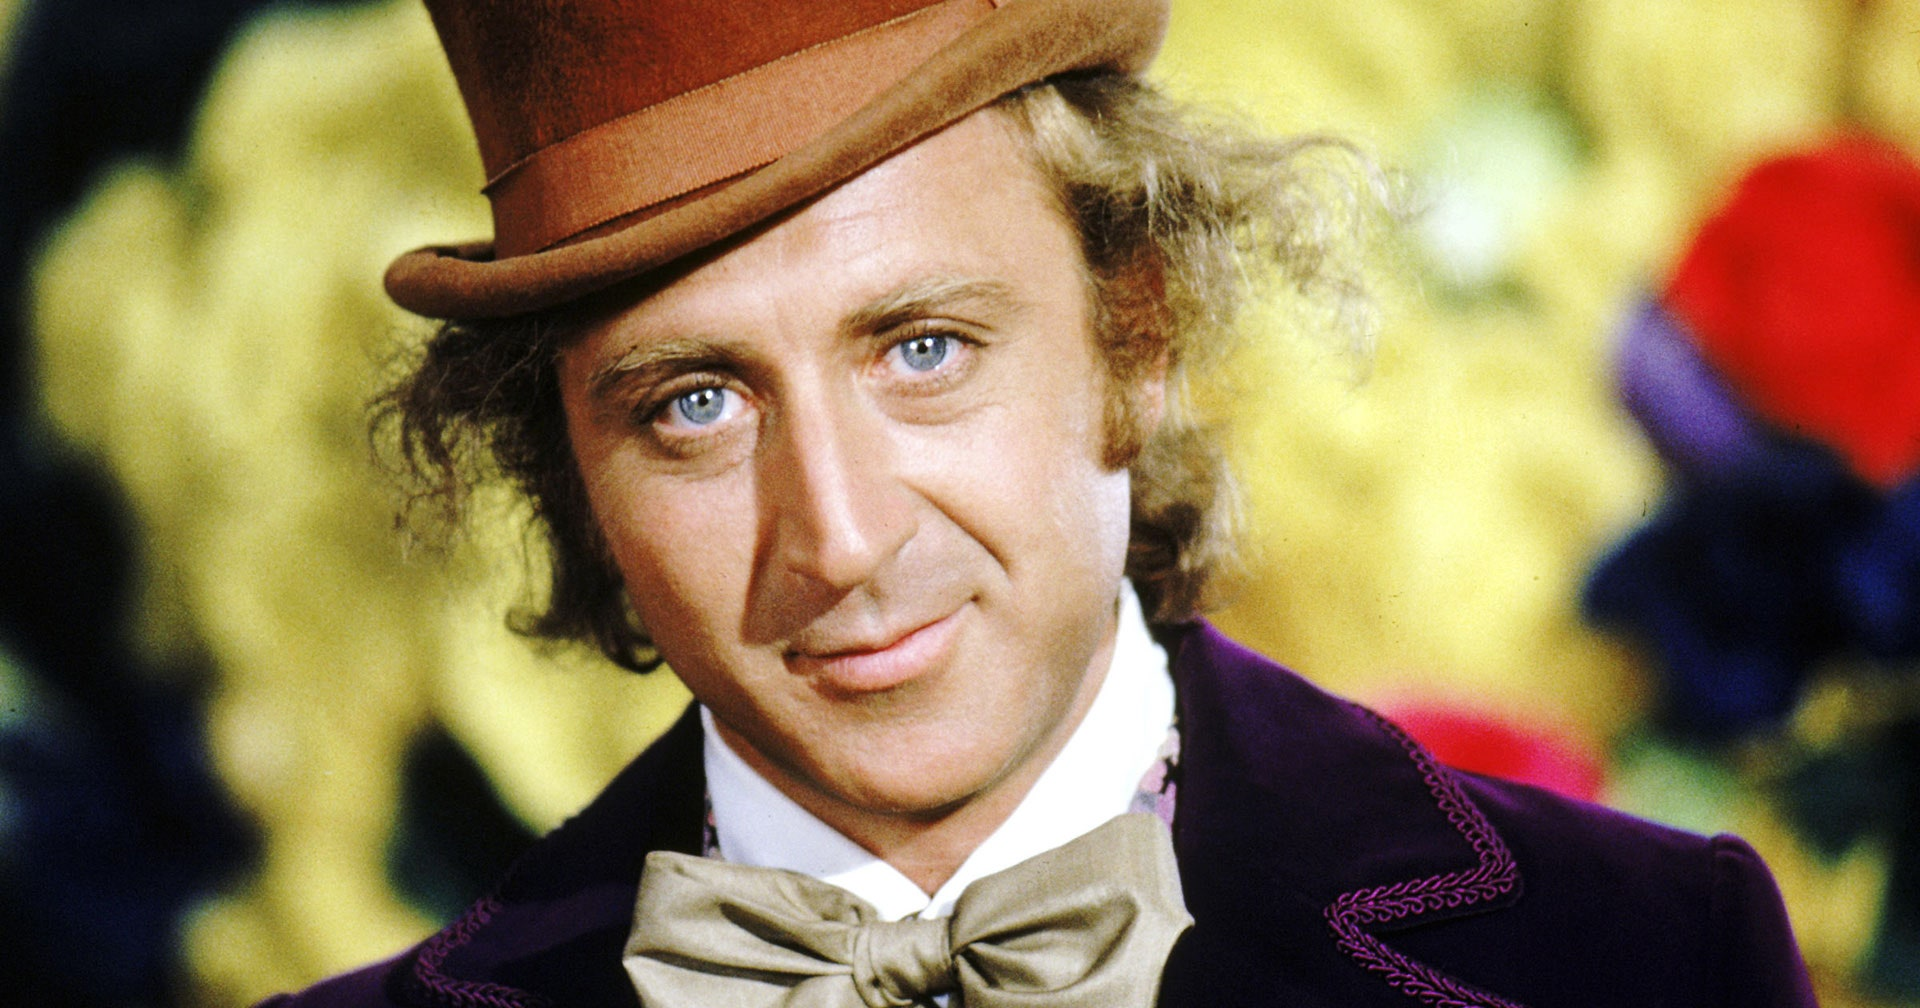 willy-wonka-is-a-serial-killer